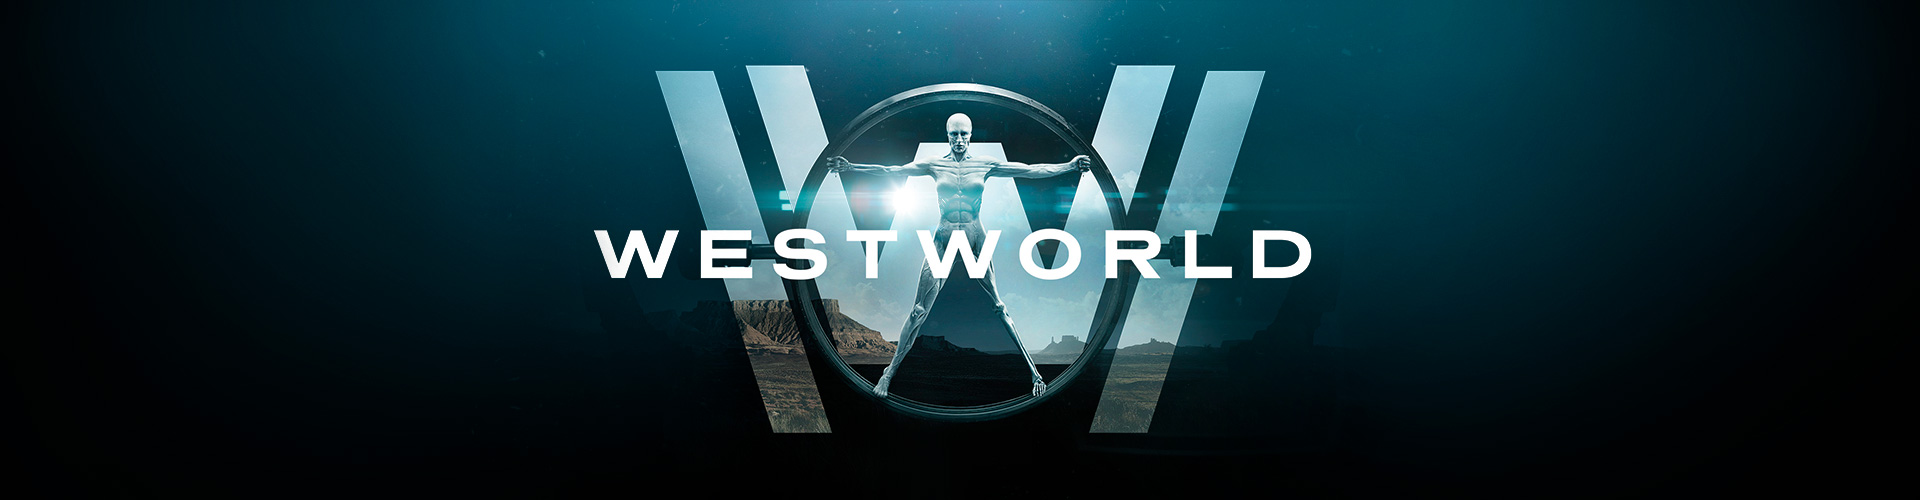 Dvd-it_slider_Westworld